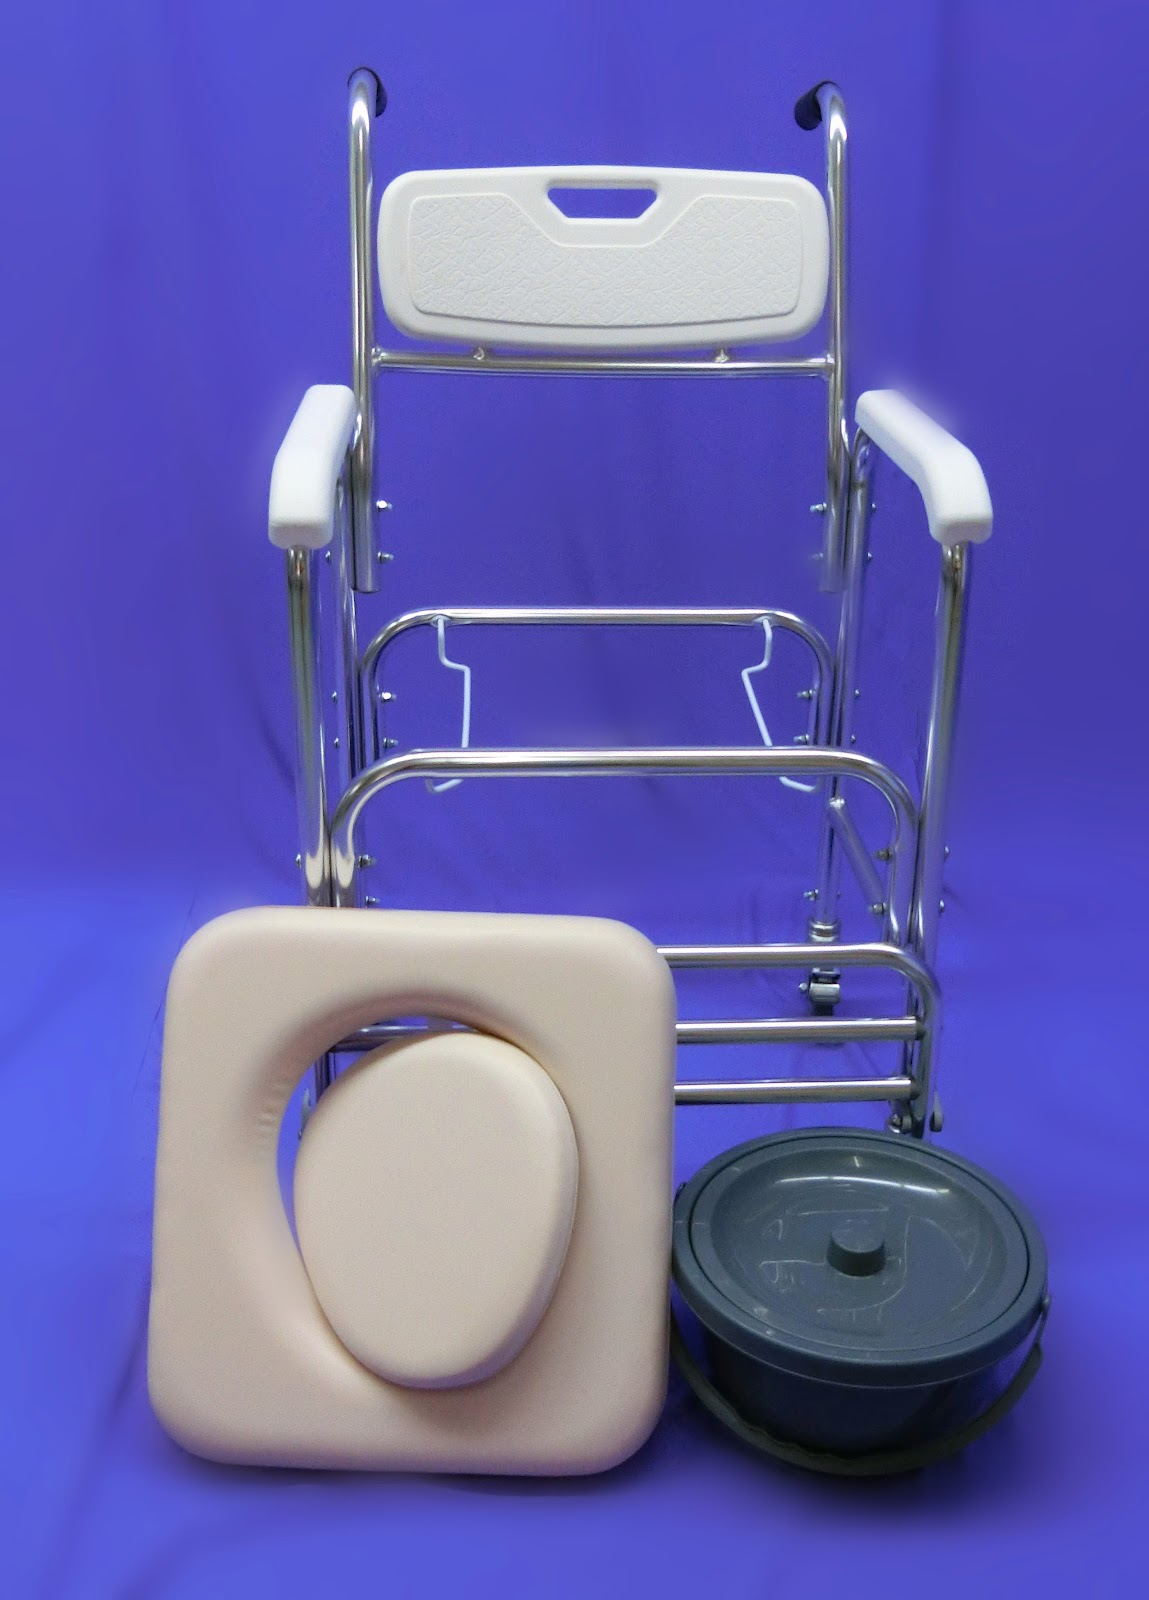 shower chair malaysia how to make a mat aluminium commode fold up foot end 7 31 2017 15 pm